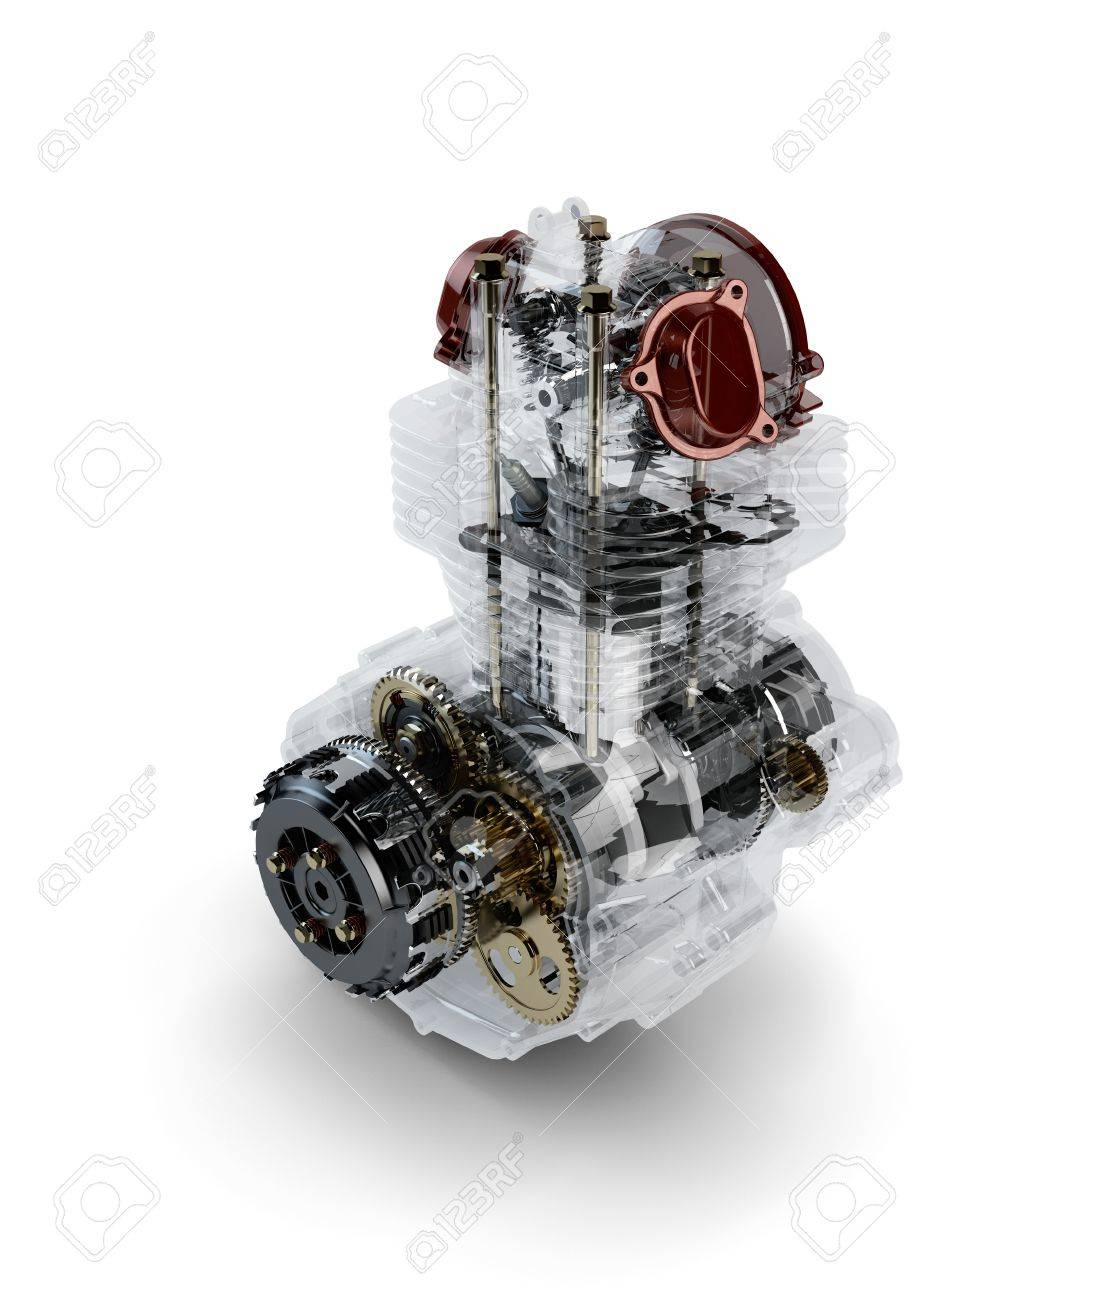 Assembled motorcycle performance engine in transparent case isolated on white Stock Photo - 16355543